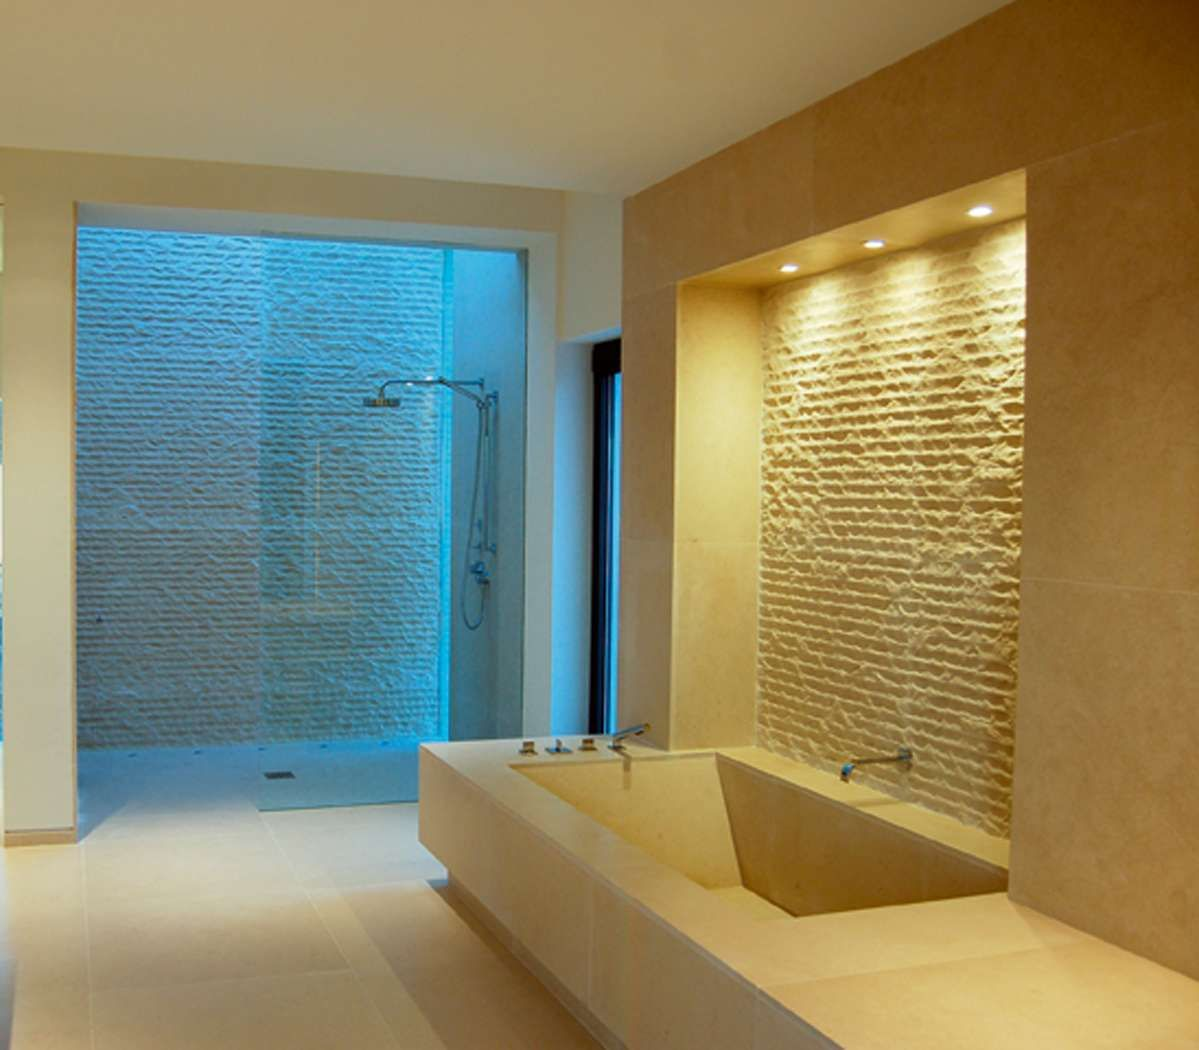 Wet Room Bathroom Designs Best No Curb Or No Dam Shower's Featuring Barrier Free Bathrooms No Design Inspiration